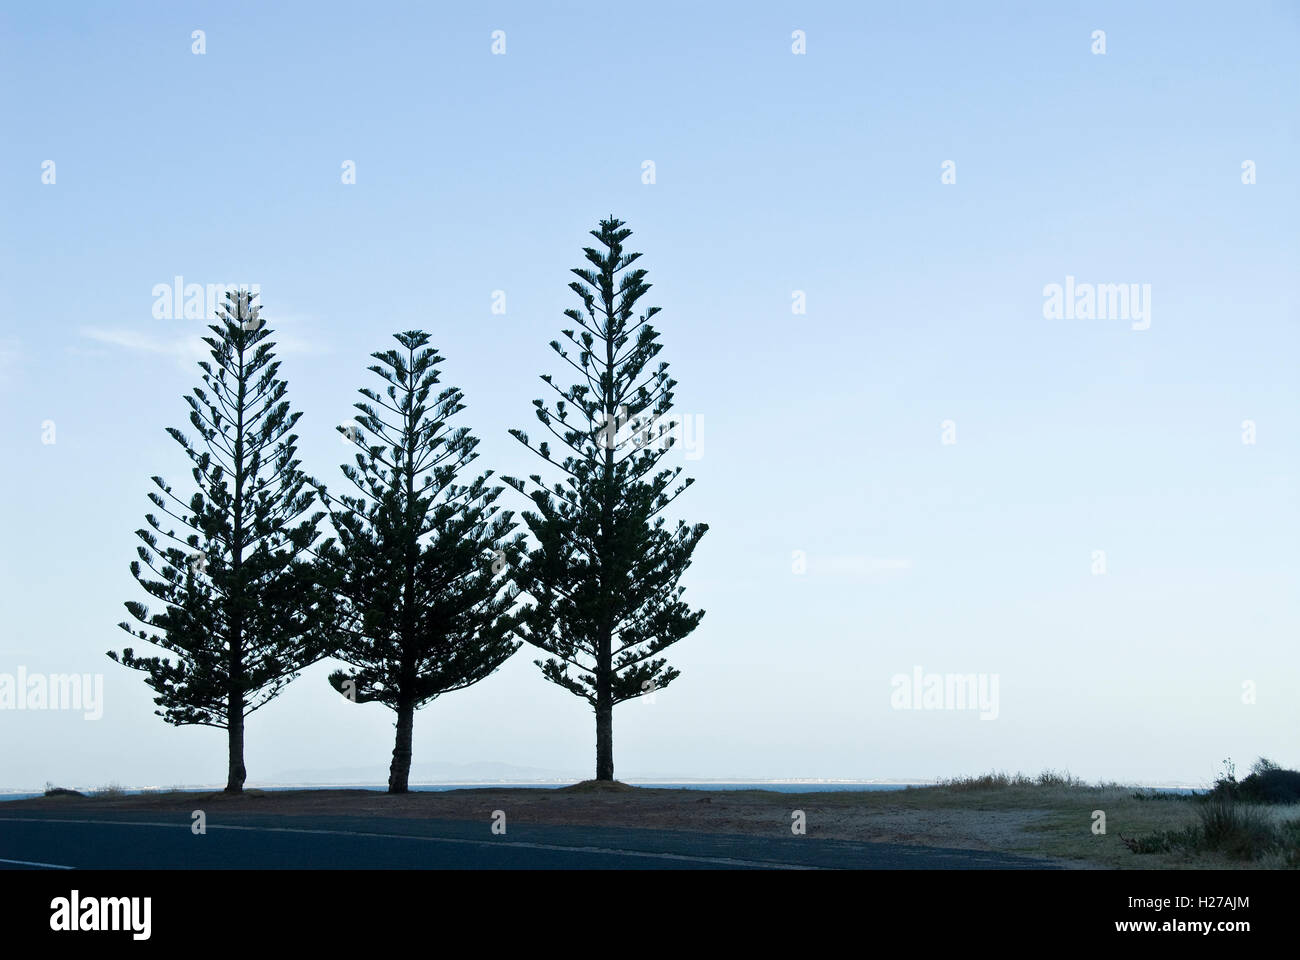 Three conifer trees silhouetted against a blue evening sky. - Stock Image